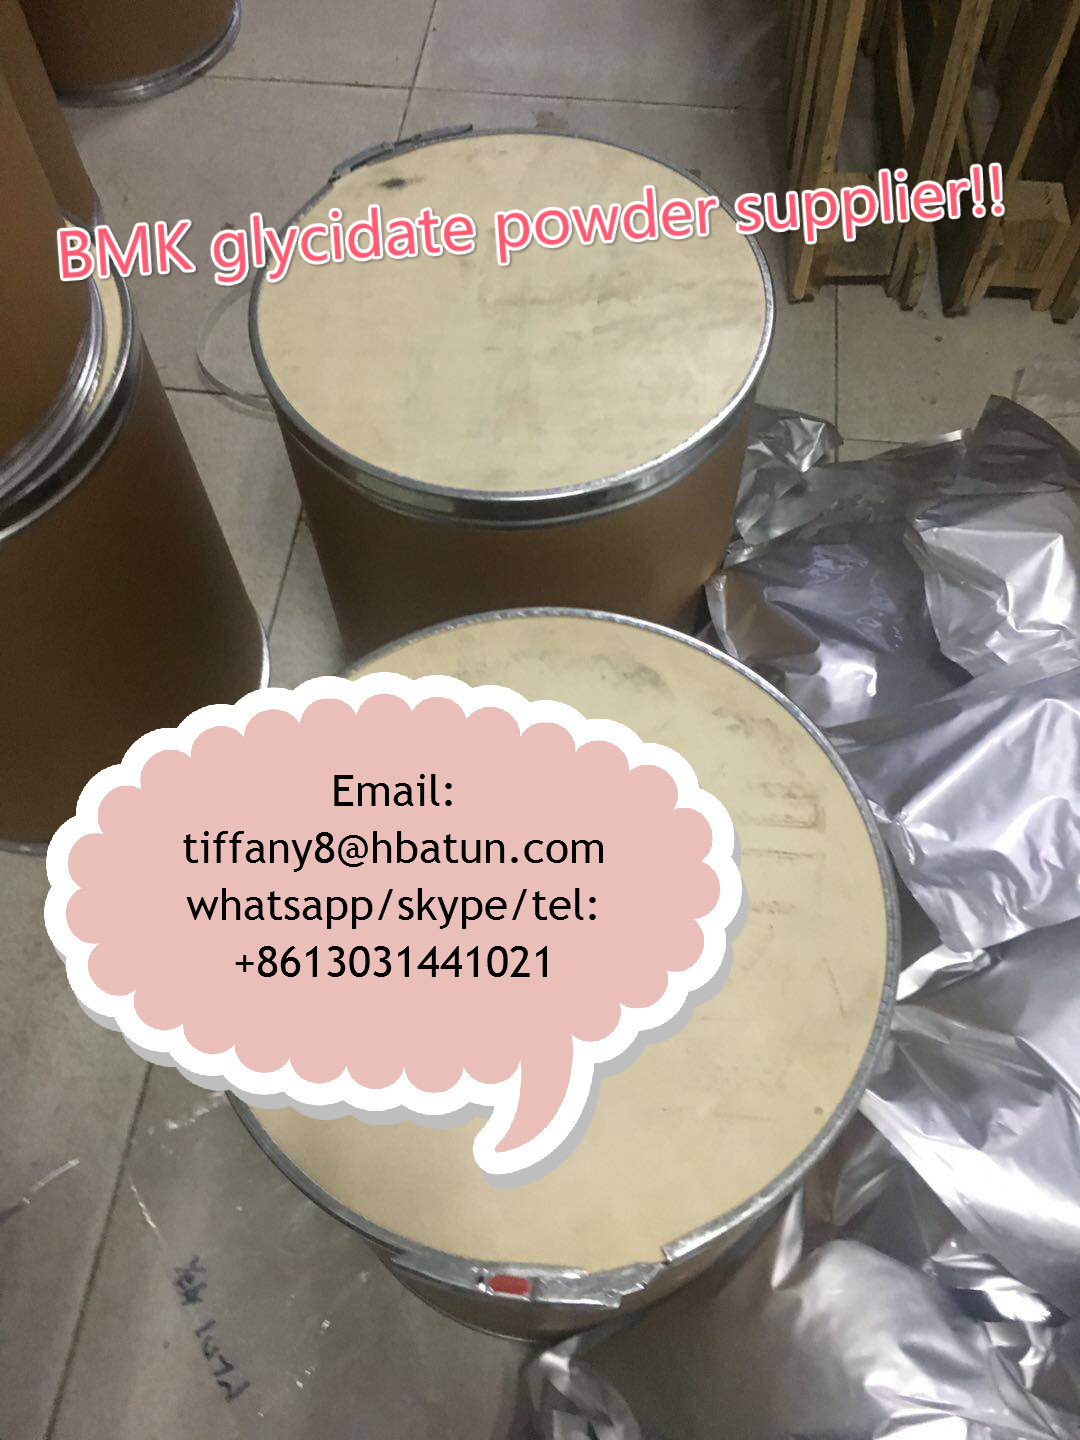 BMK BMK Glycidate Powder SUPPLIER tiffany8@hbatun com whatsapp:+